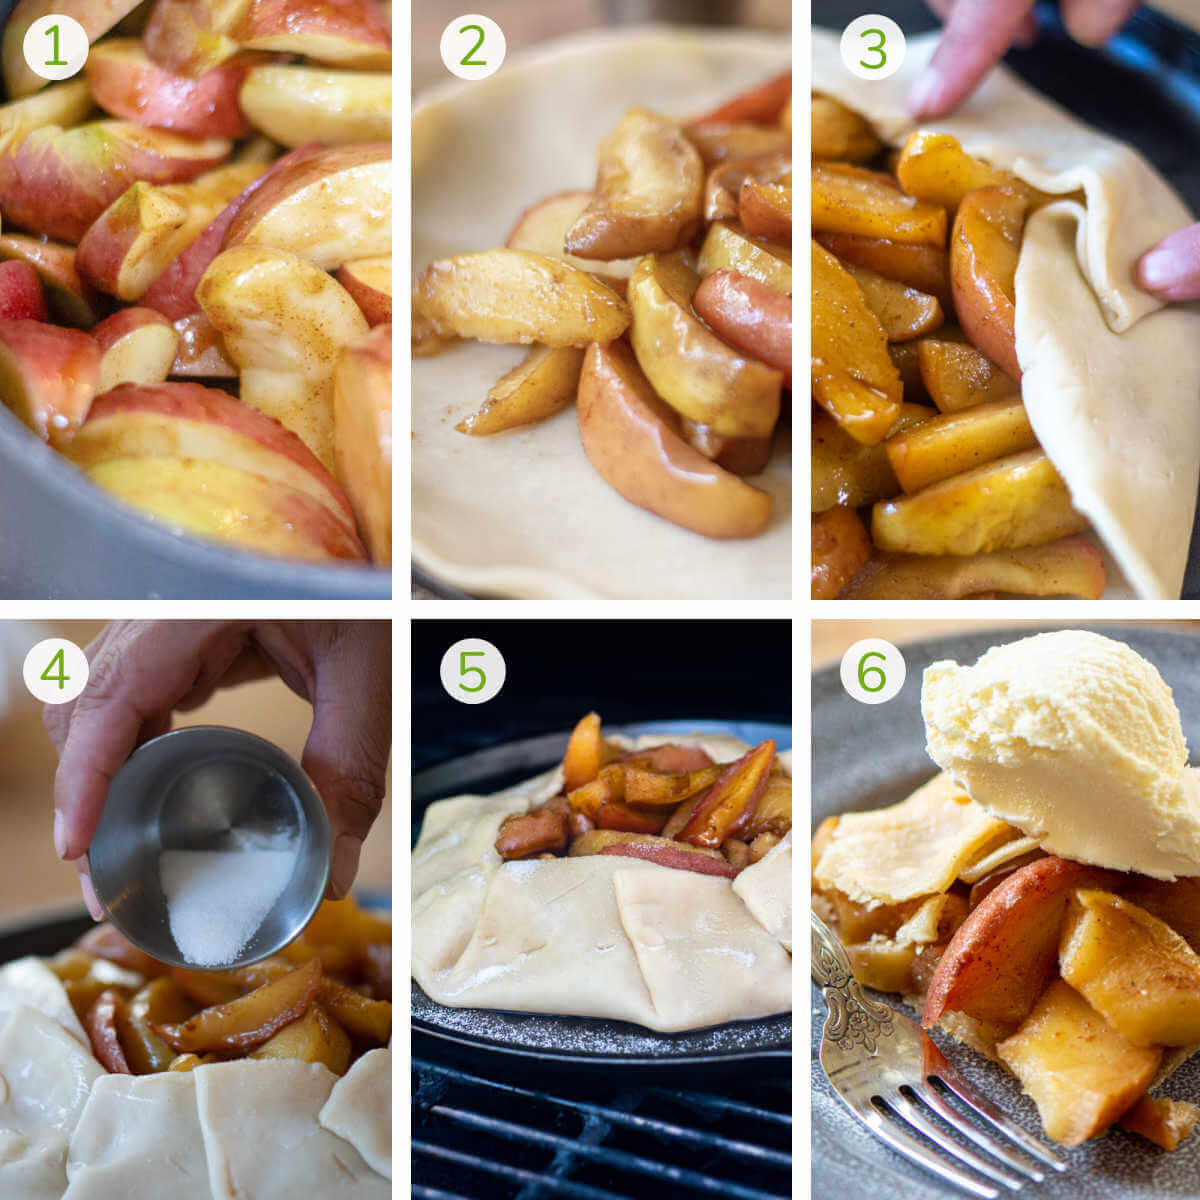 several process photos showing making the apple pie filling, folding the crust, grilling and serving.